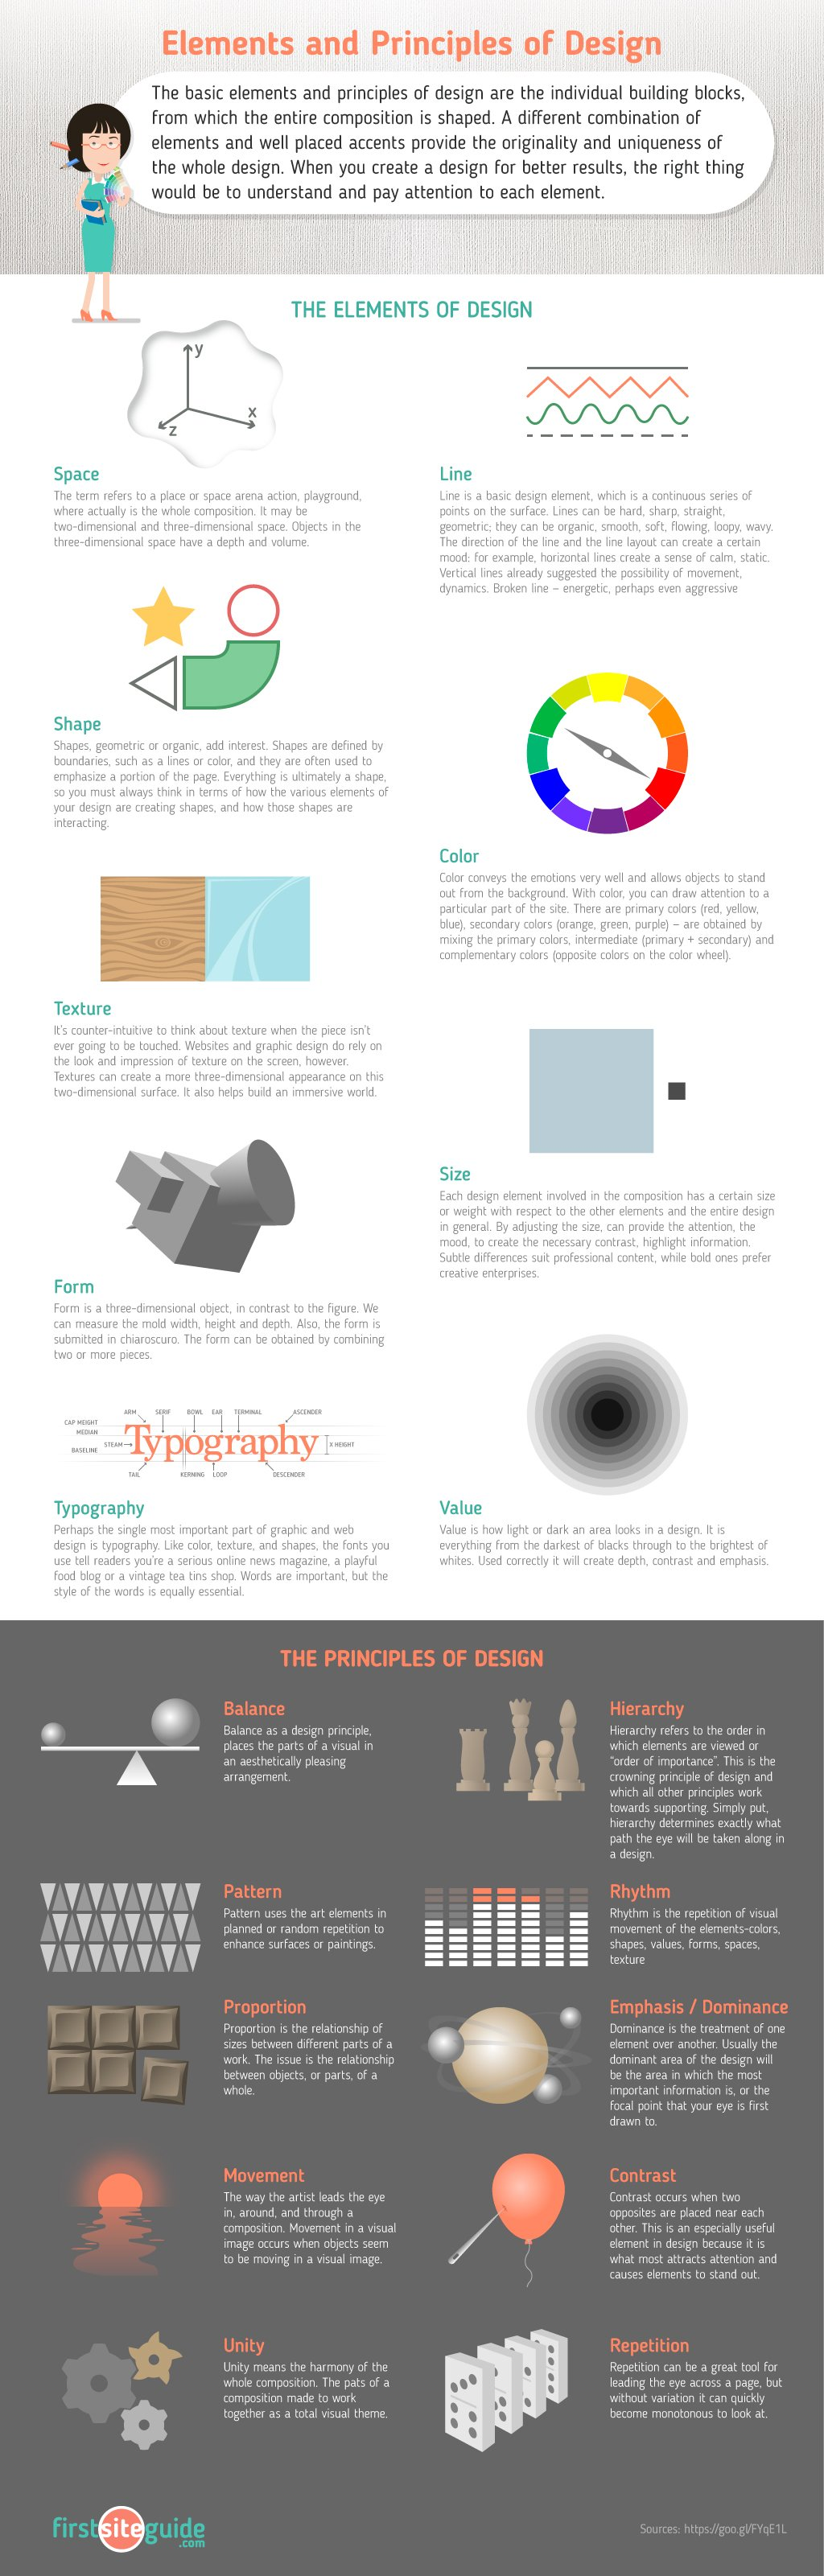 Elements and Principles of Design - Cheat Sheet